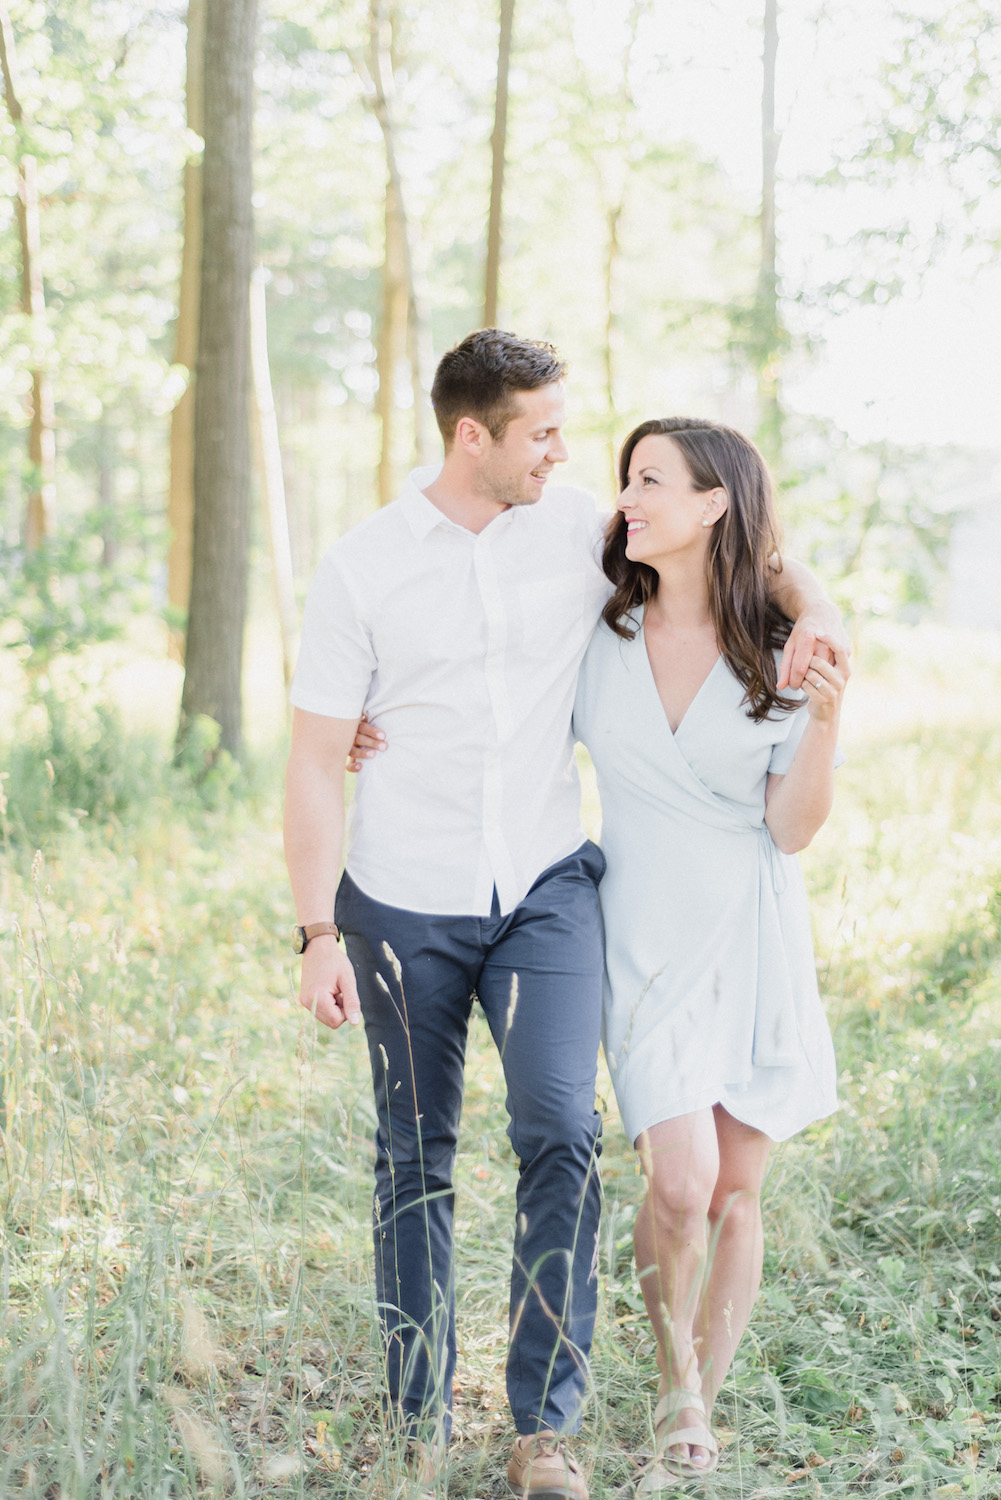 Jenn-Kavanagh-Photography-Light-Airy-Engagement-Photos